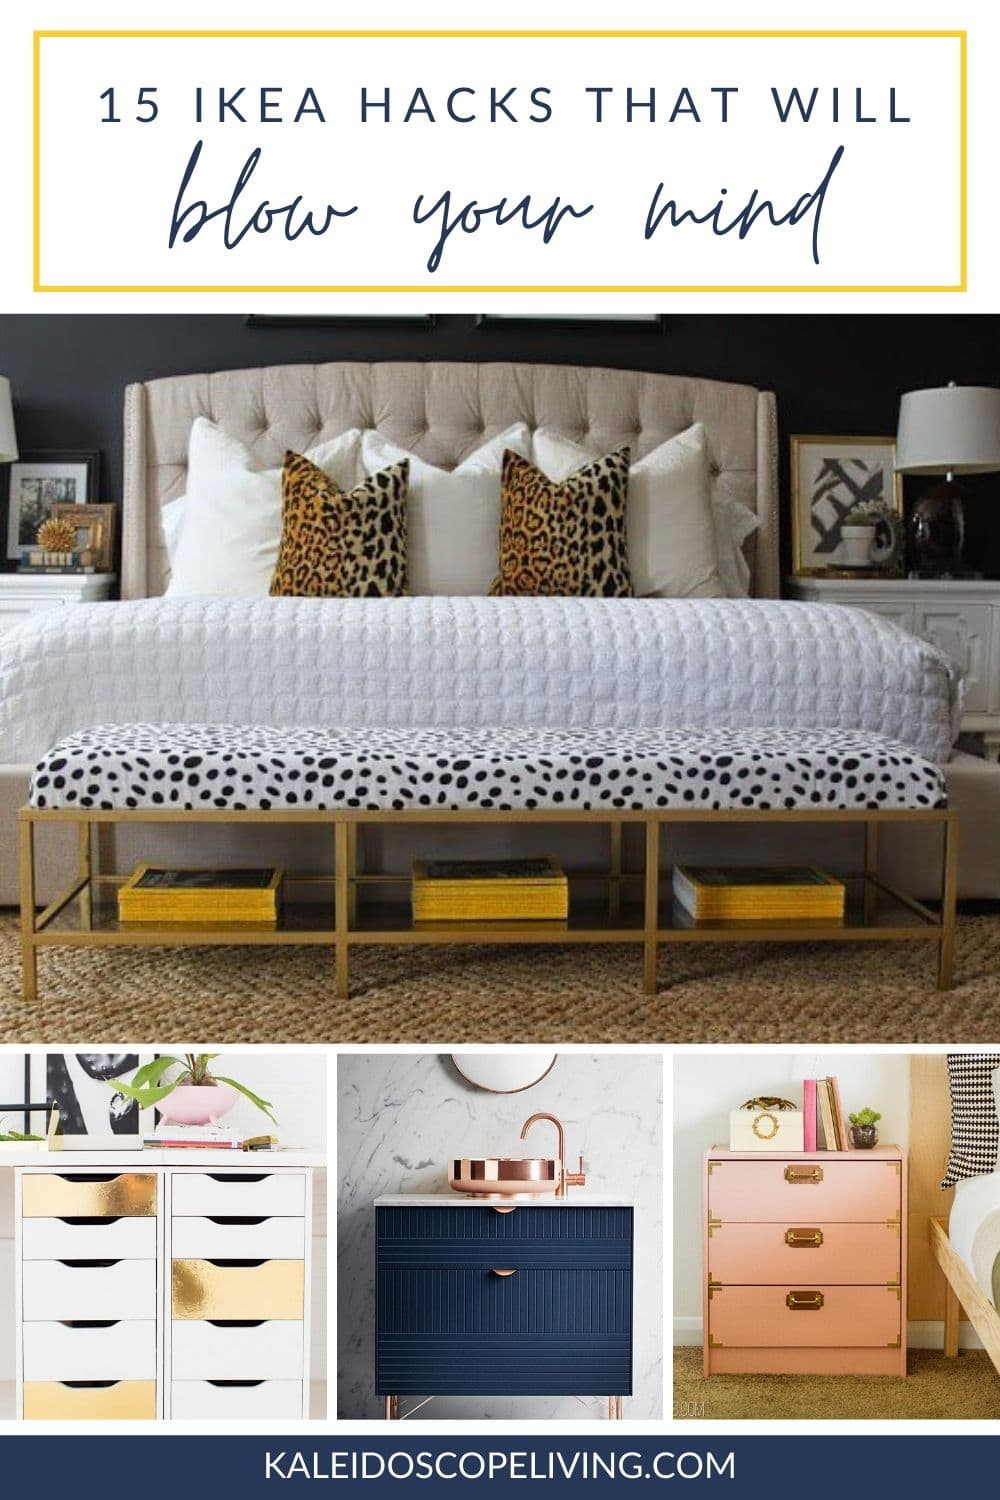 15 Diy Ikea Hacks That Will Blow Your Mind Designer Trapped